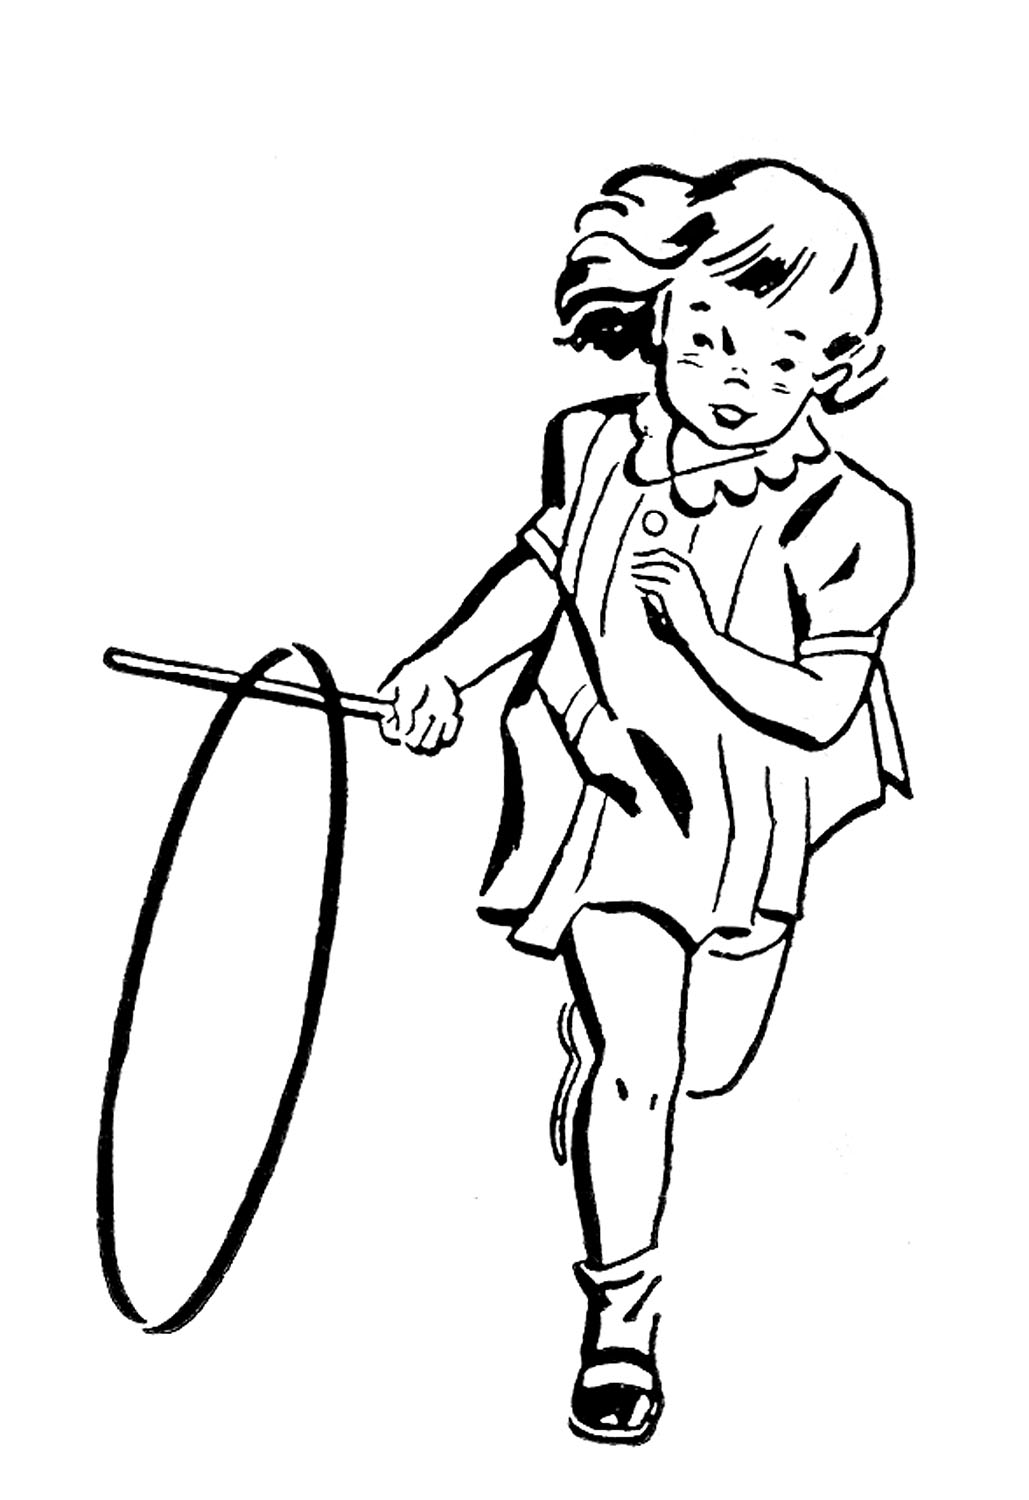 1029x1500 Little Girl Fishing Clipart Black And White